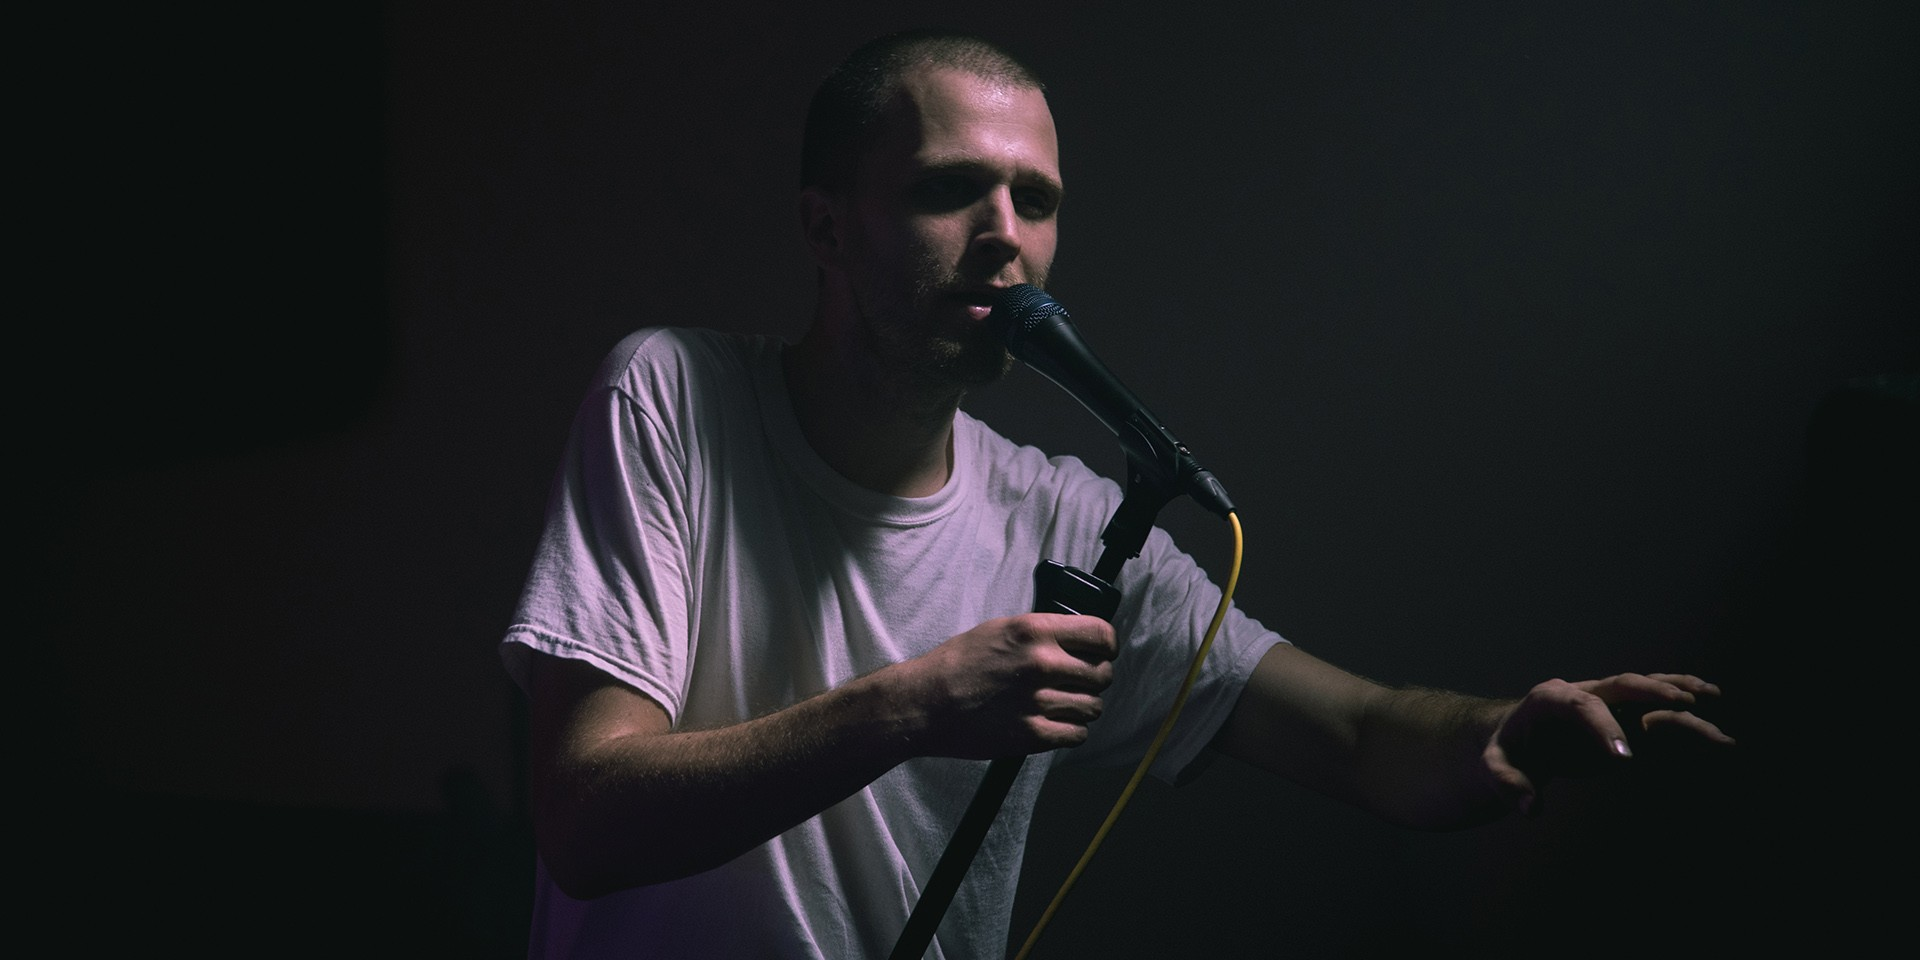 JMSN oozes charisma on his first Singapore show — photo gallery